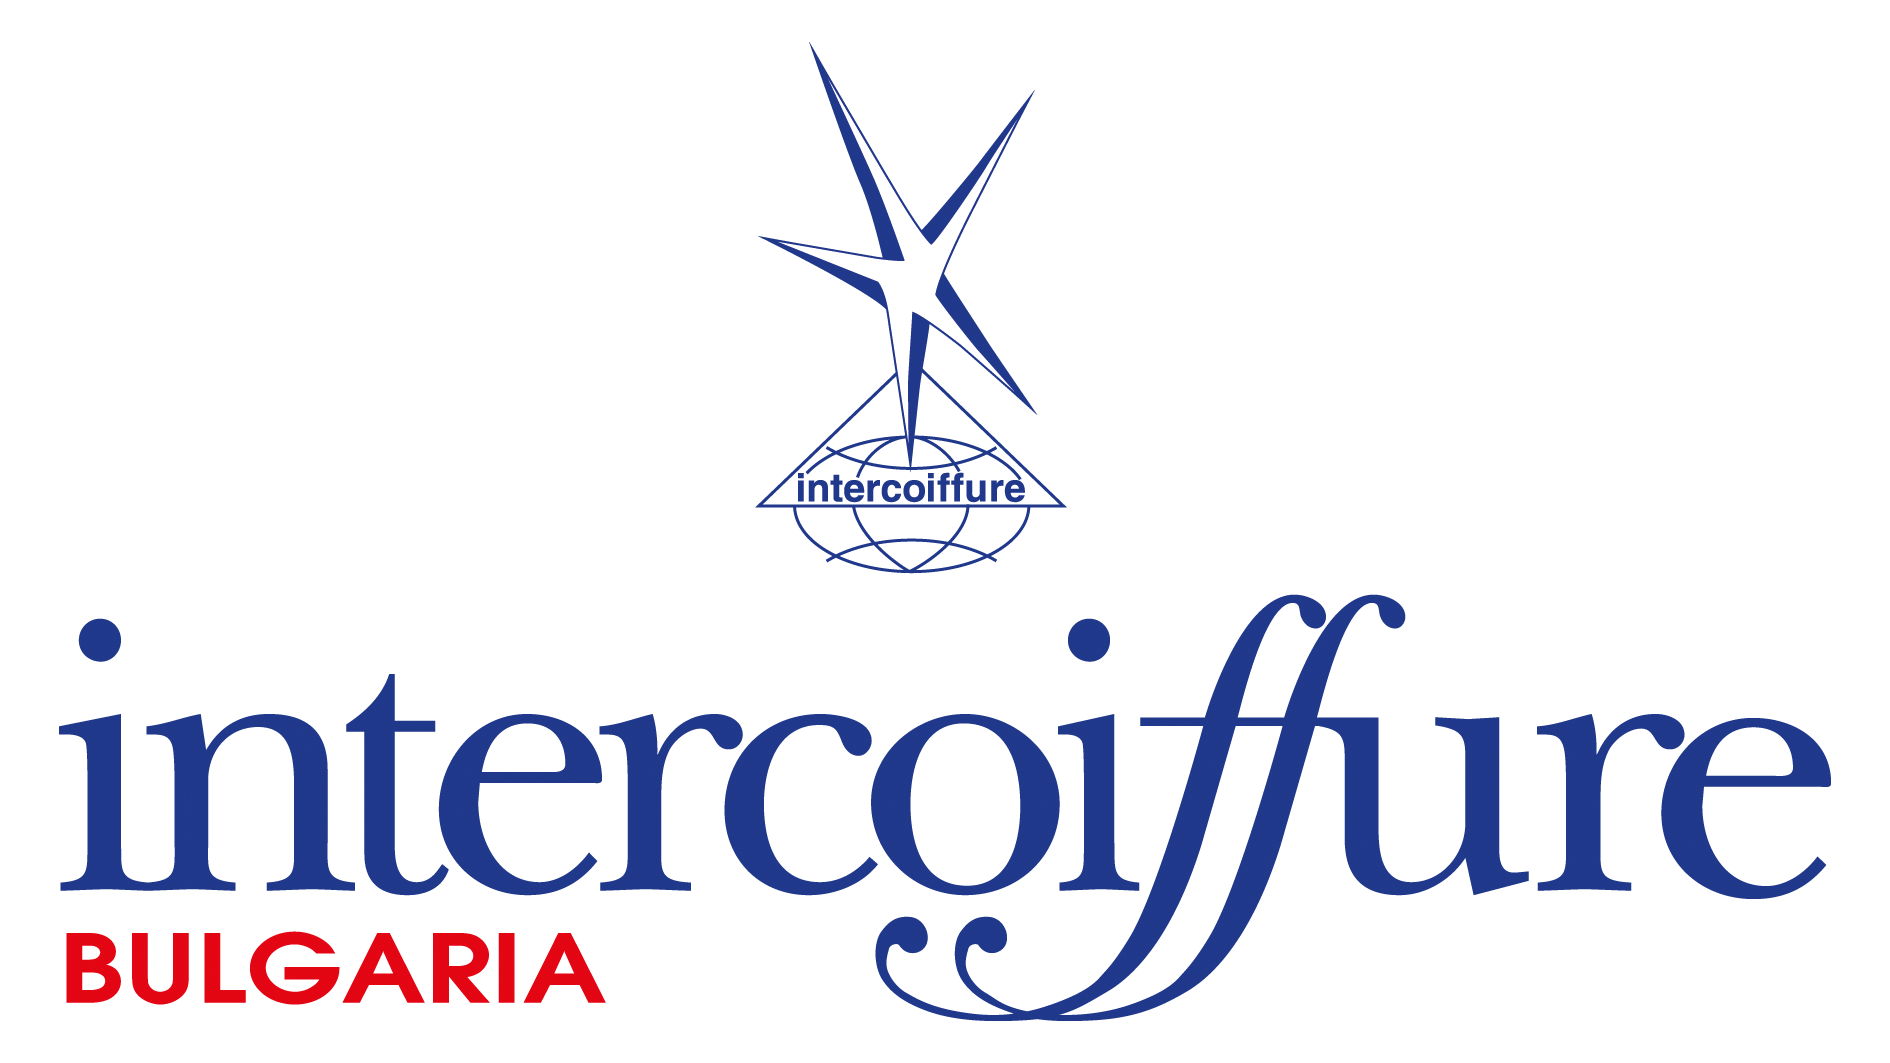 Intercoiffure Bulgaria